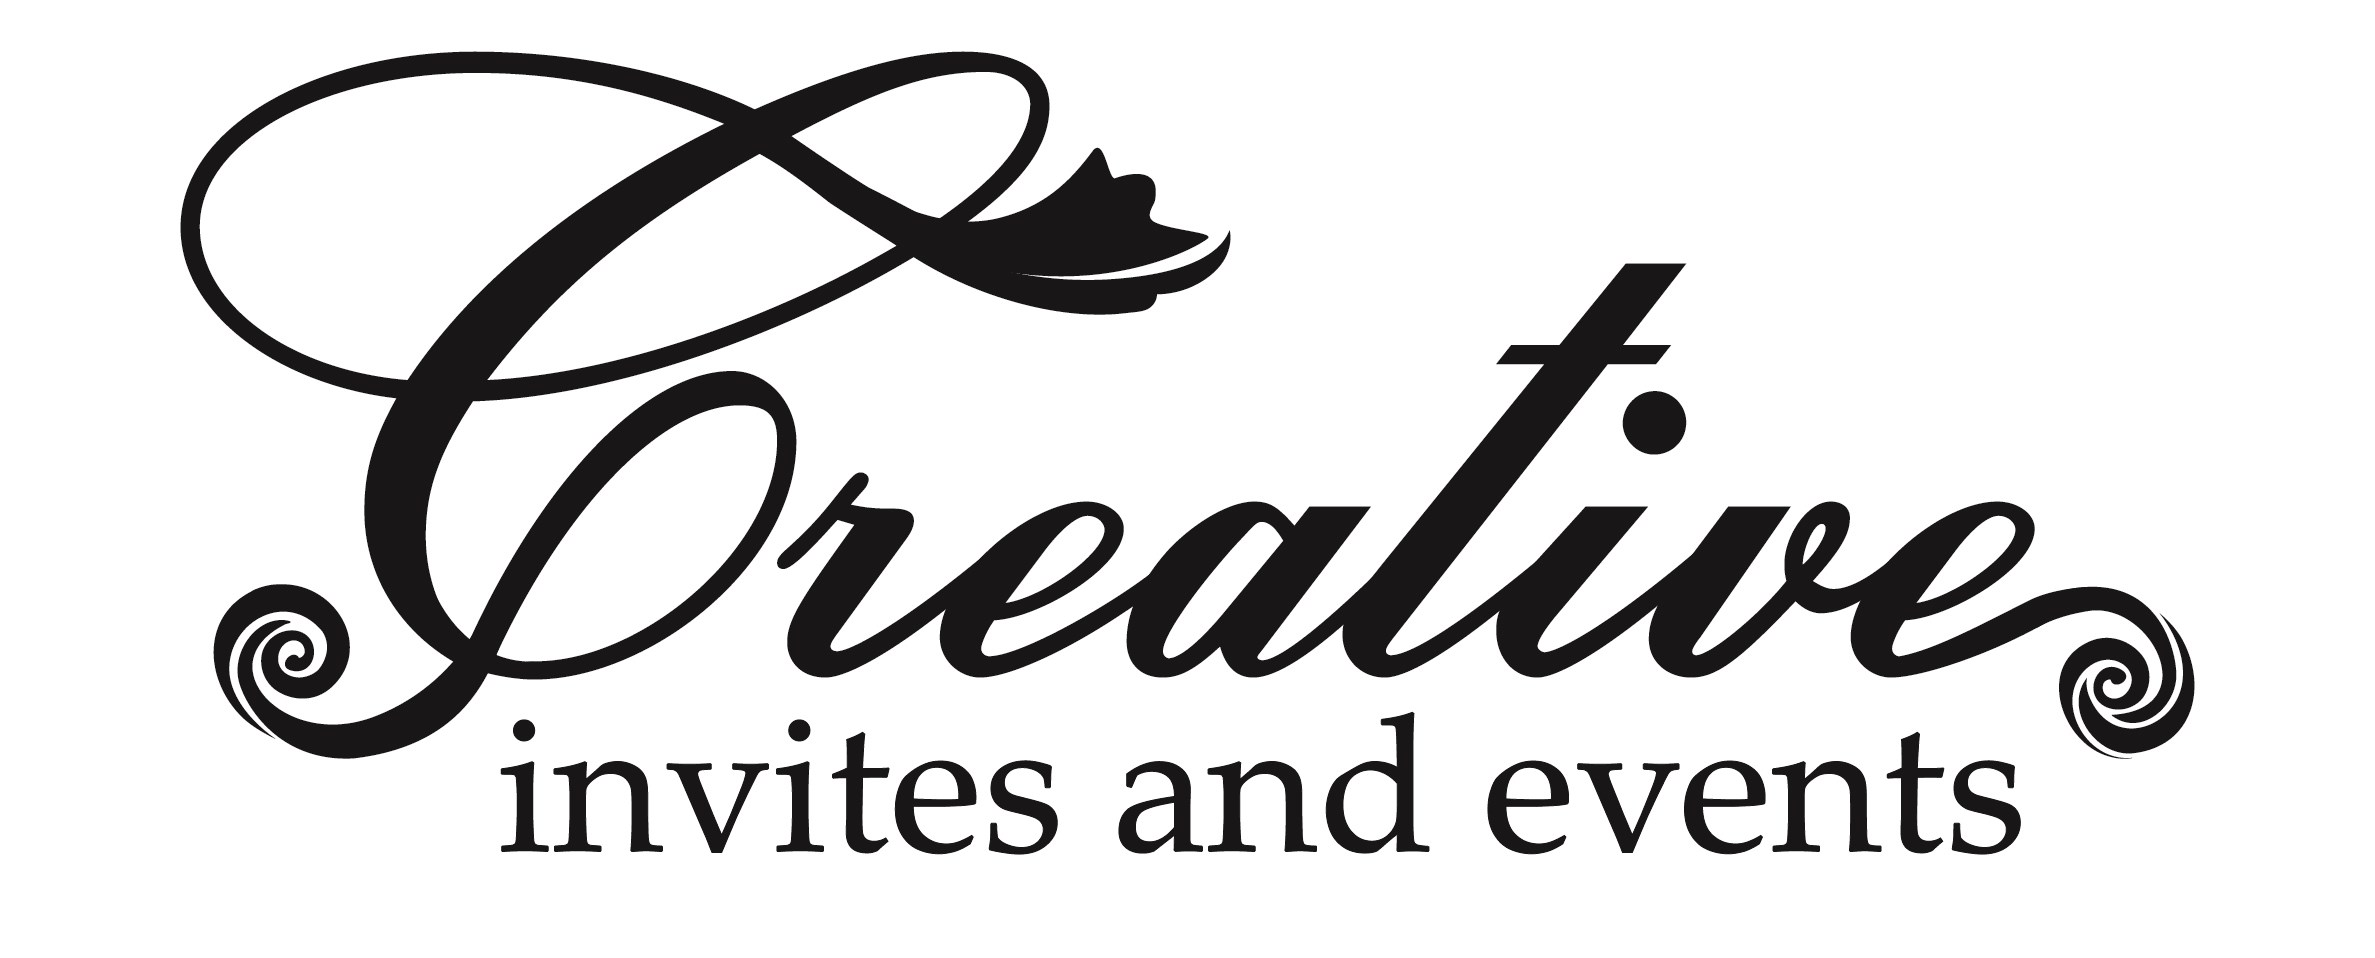 Creative Invites And Events Reviews